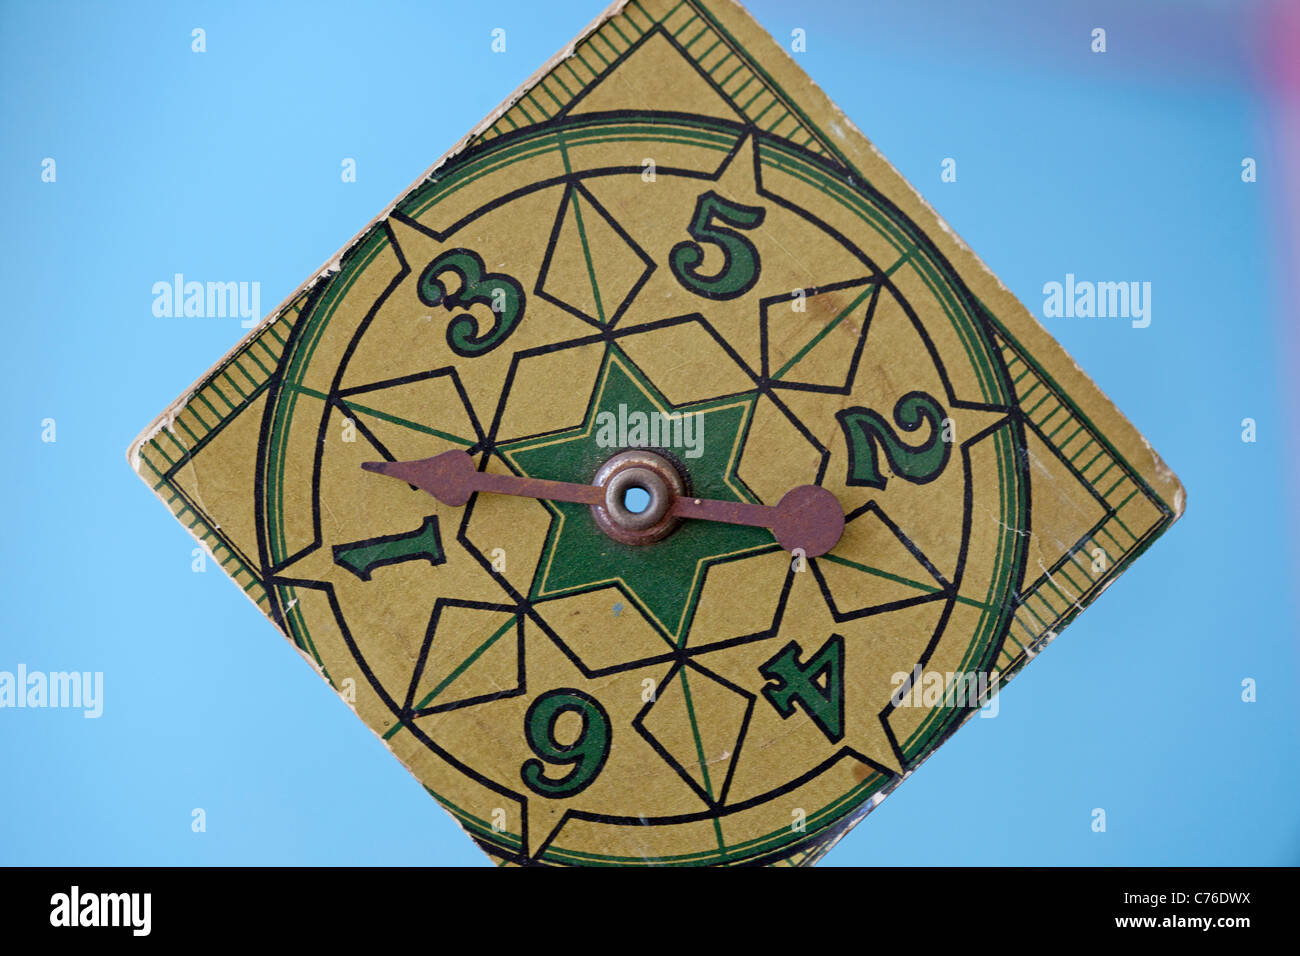 antique game spinner - Stock Image